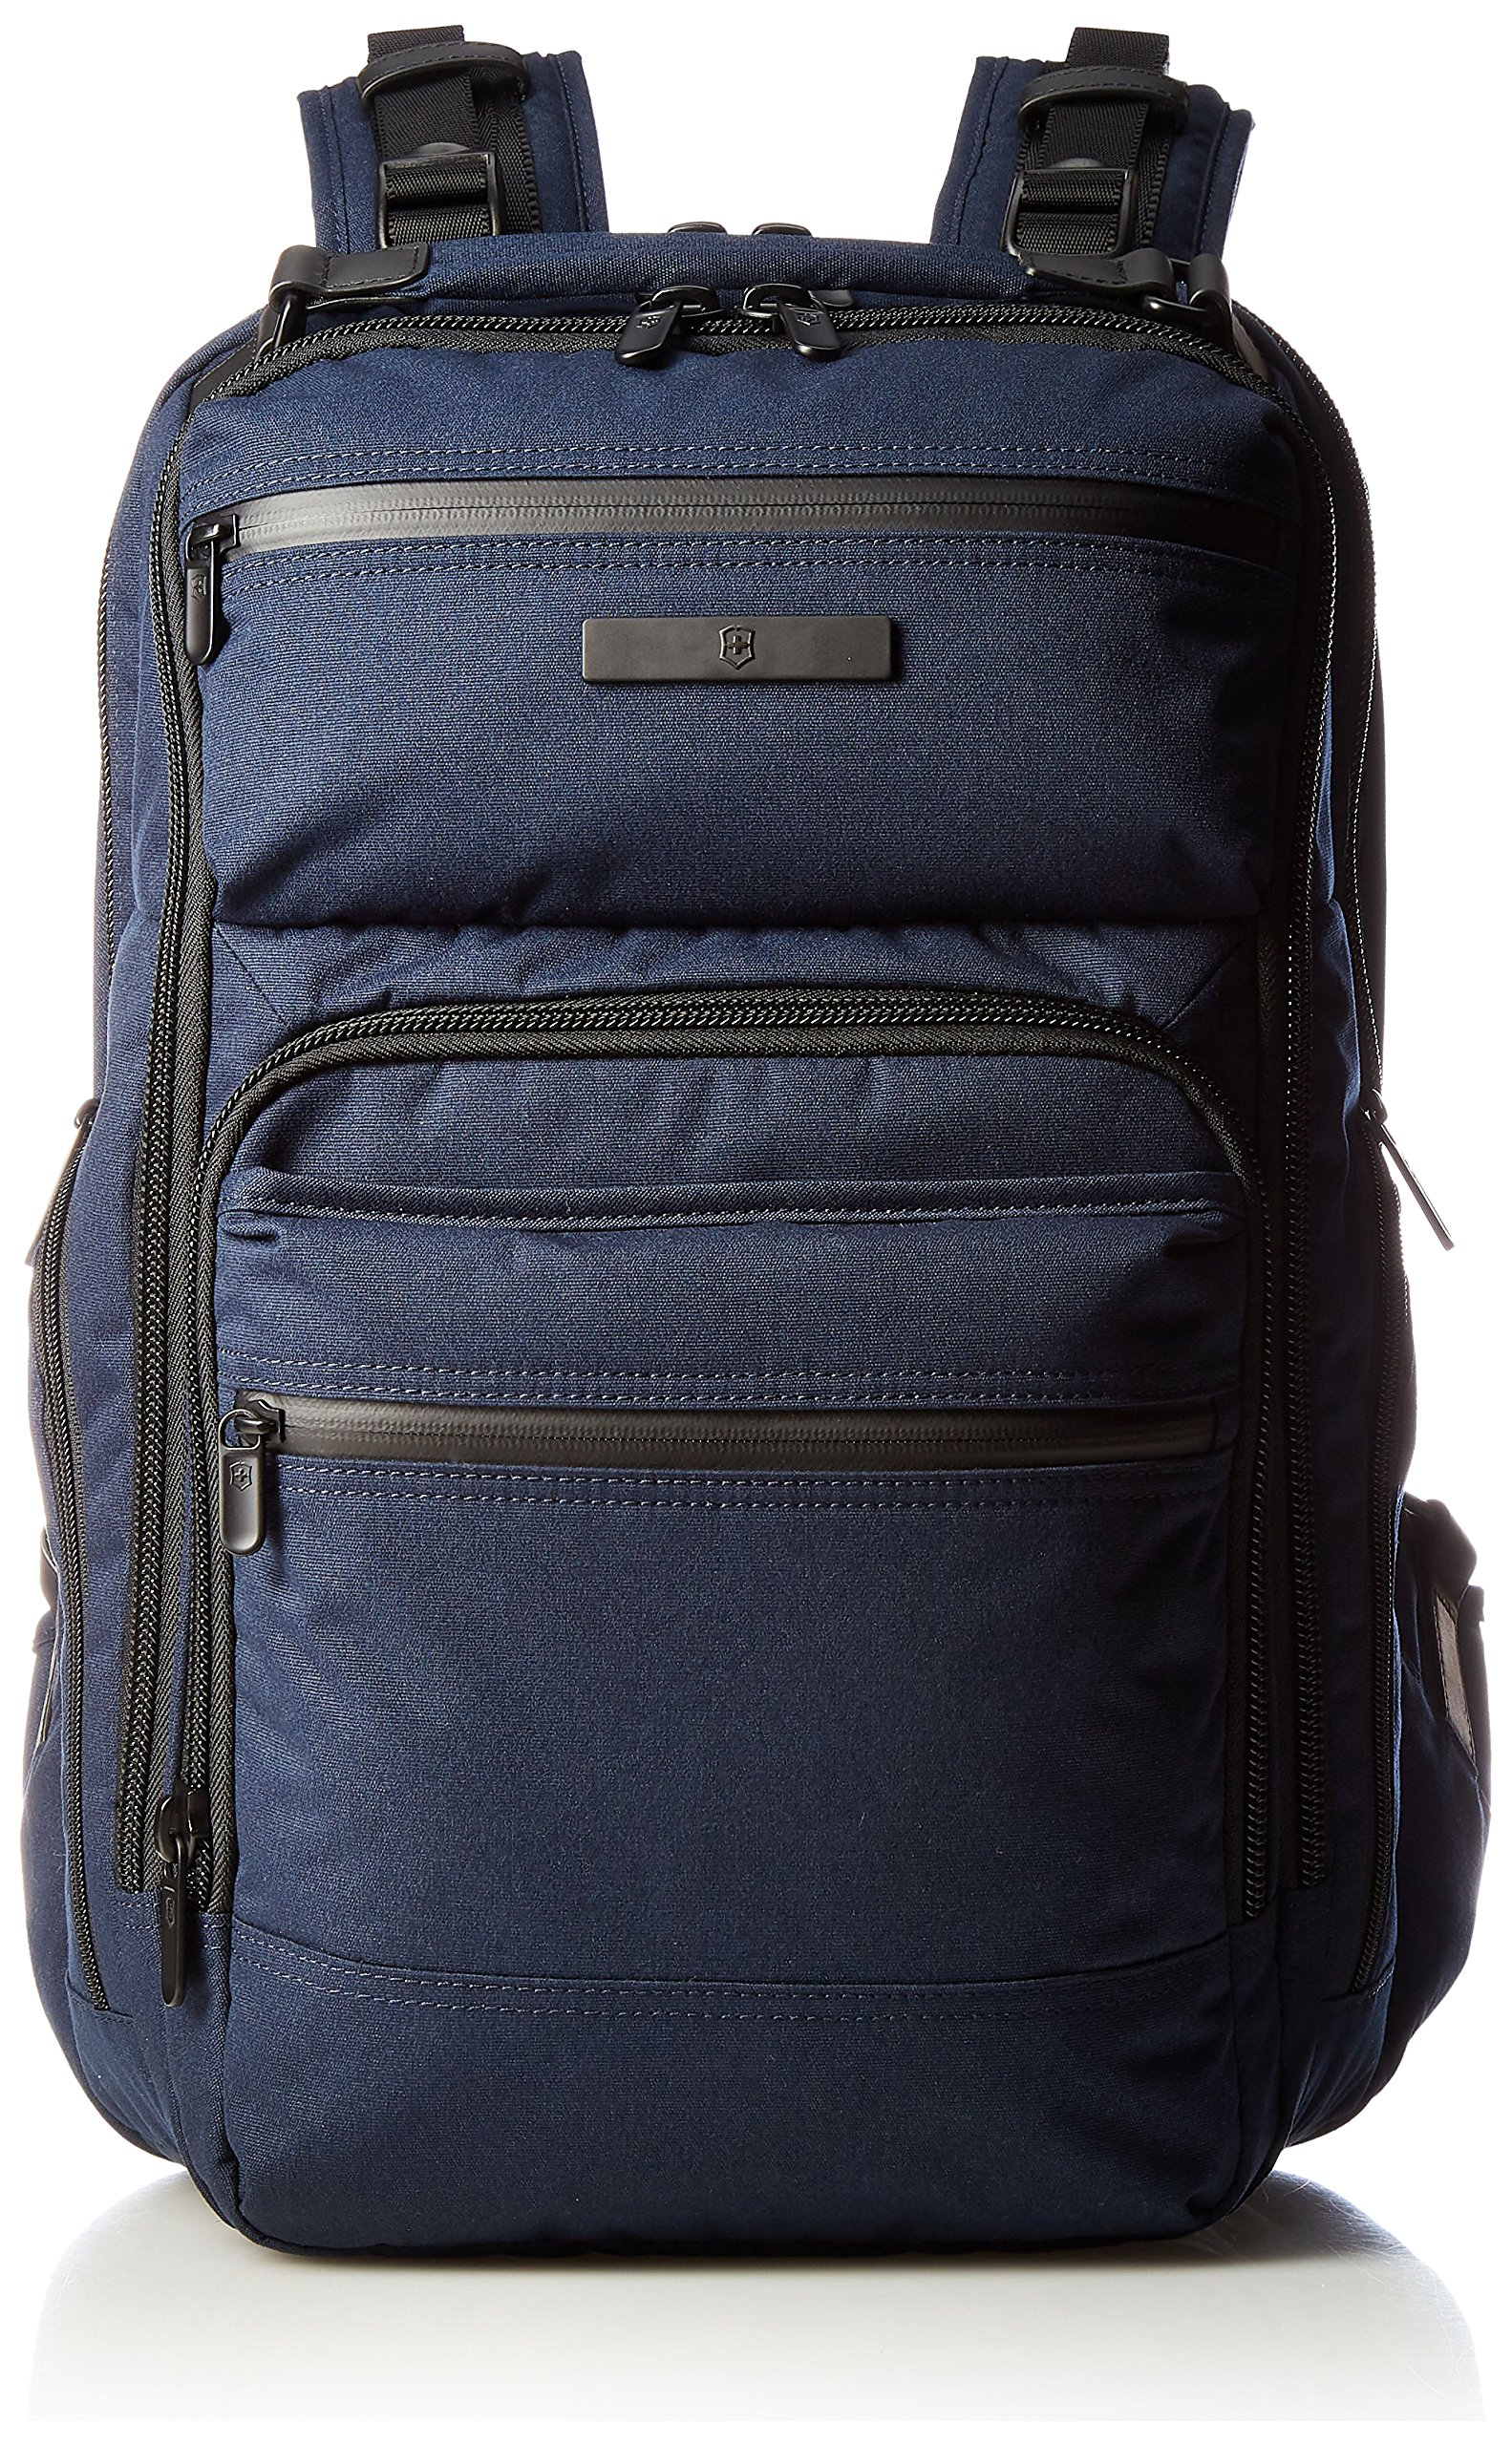 Victorinox Architecture Urban Rath Business Backpack, Navy, One Size by Victorinox